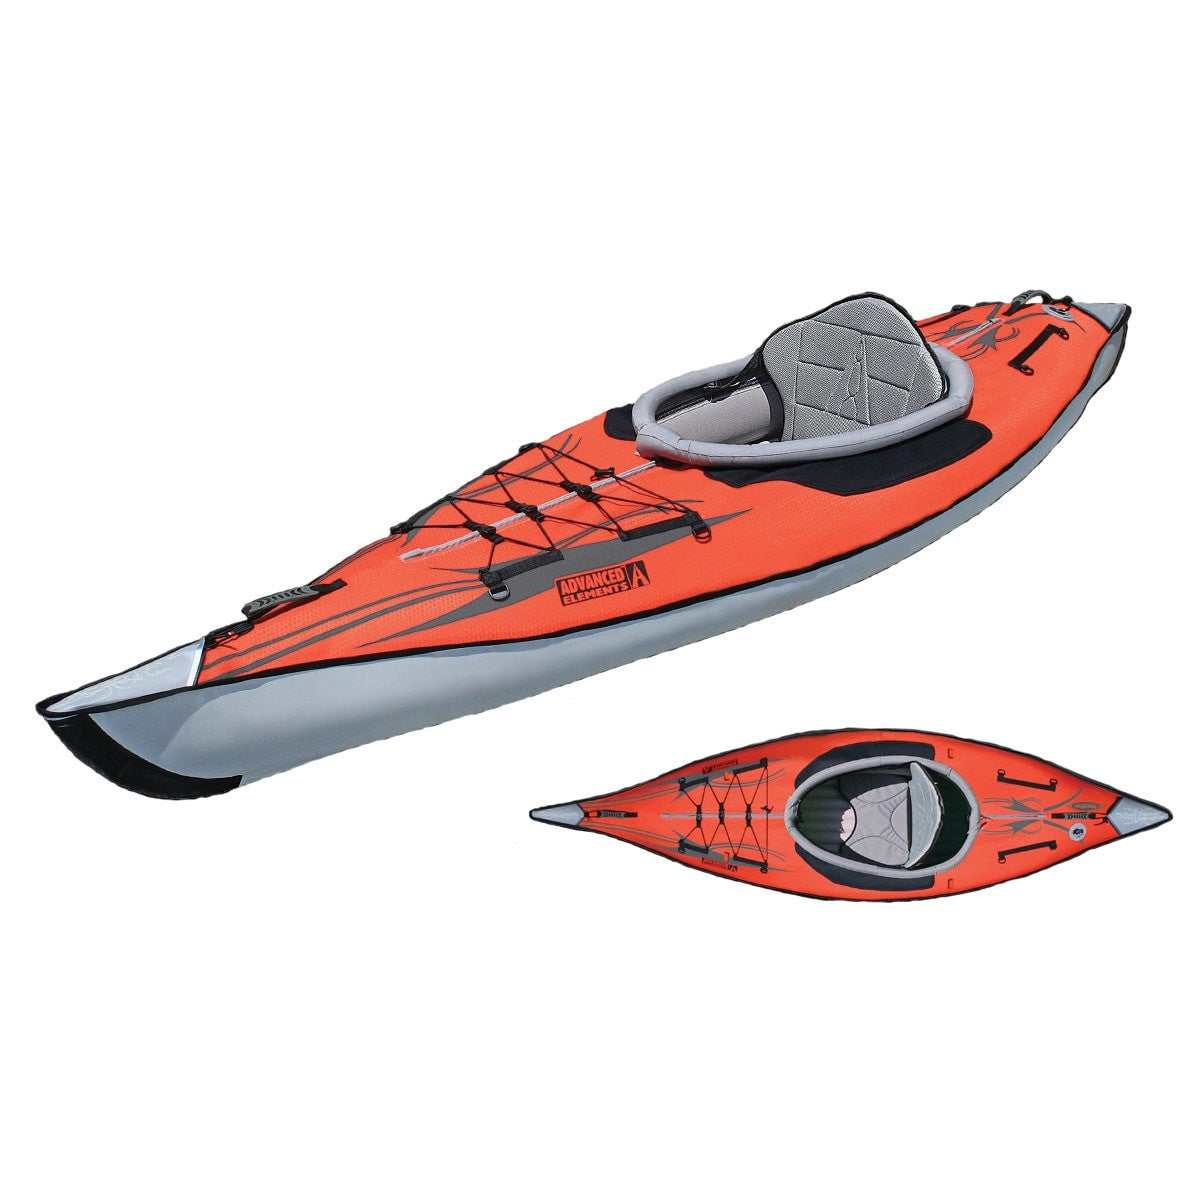 Advanced Elements AdvancedFrame Inflatable Kayak | Red - Kayak Creek